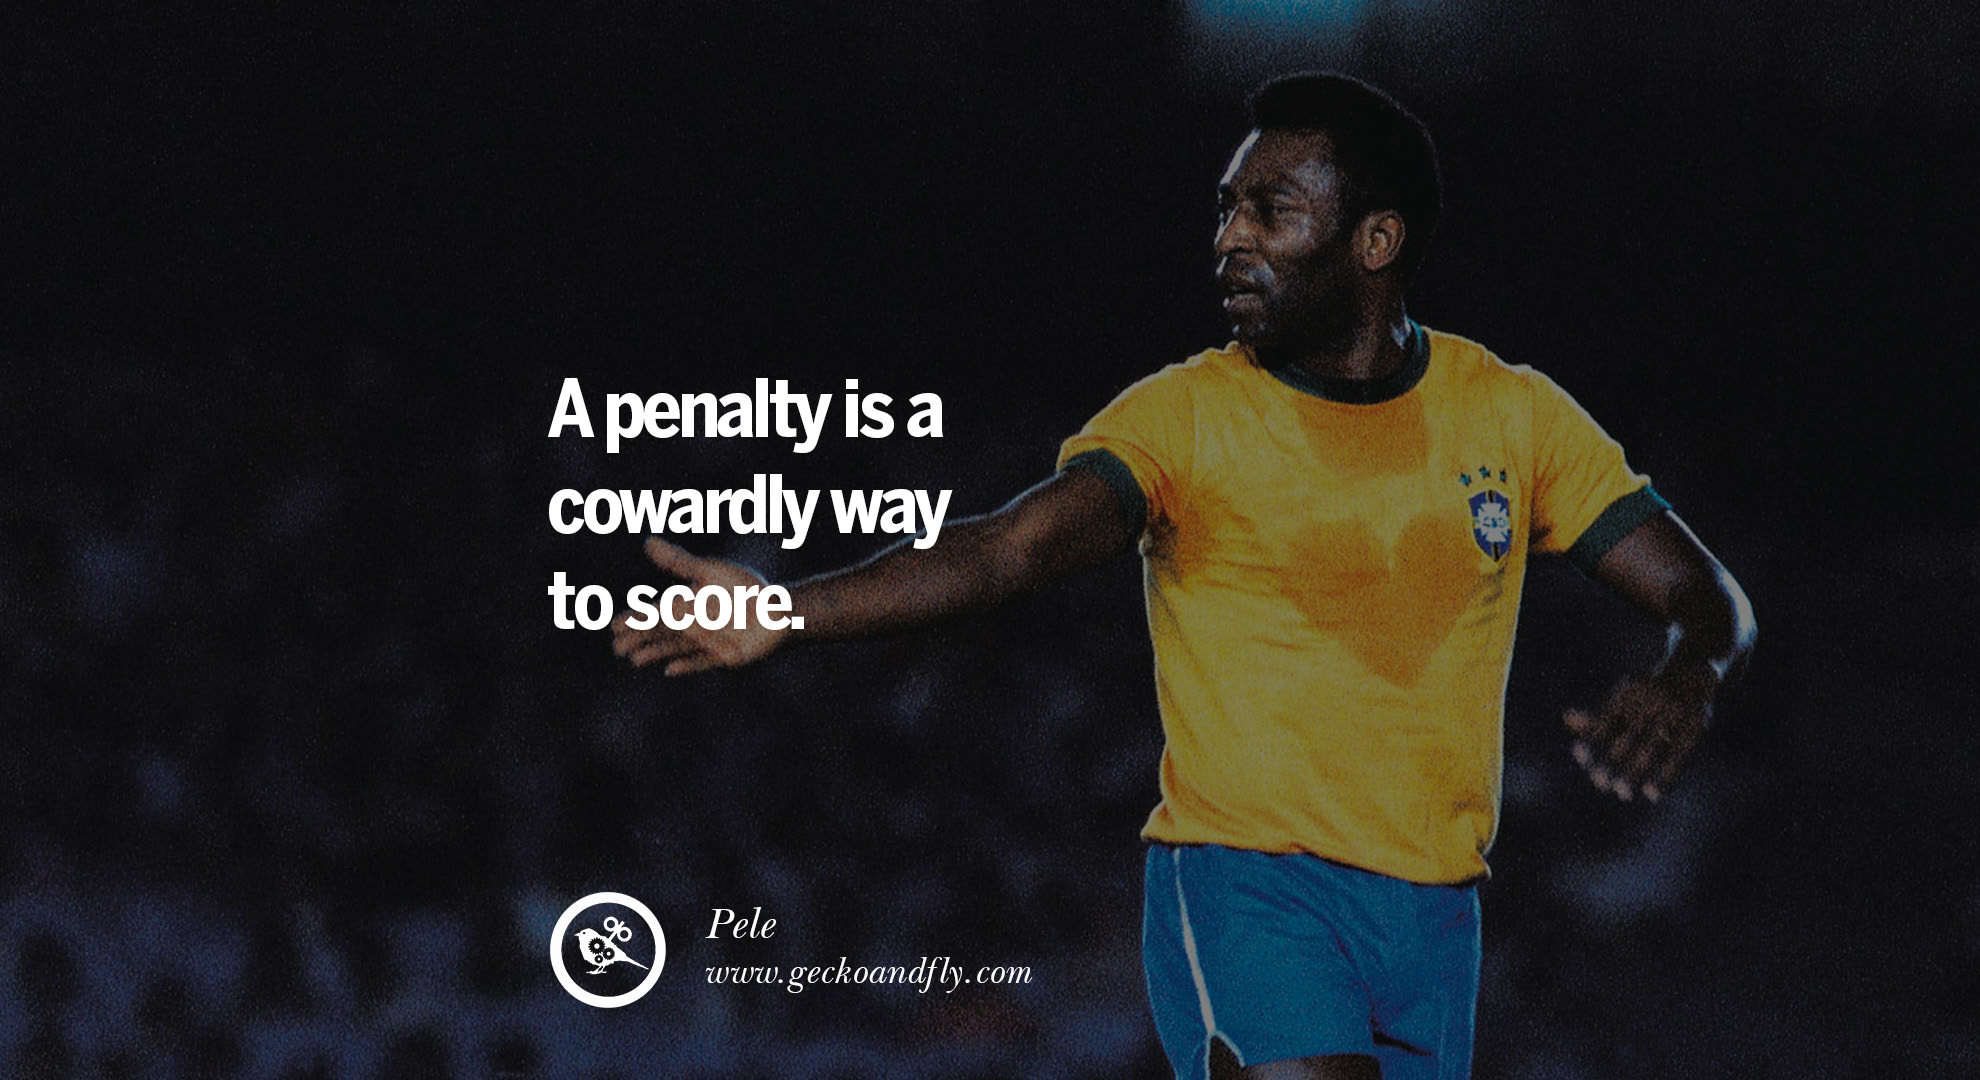 World Cup Quotes On Quotestopics Way Switch Guitar Image Galleries Imagekbcom Football Fifa Brazil 2014 A Penalty Is Cowardly To 1980x1080